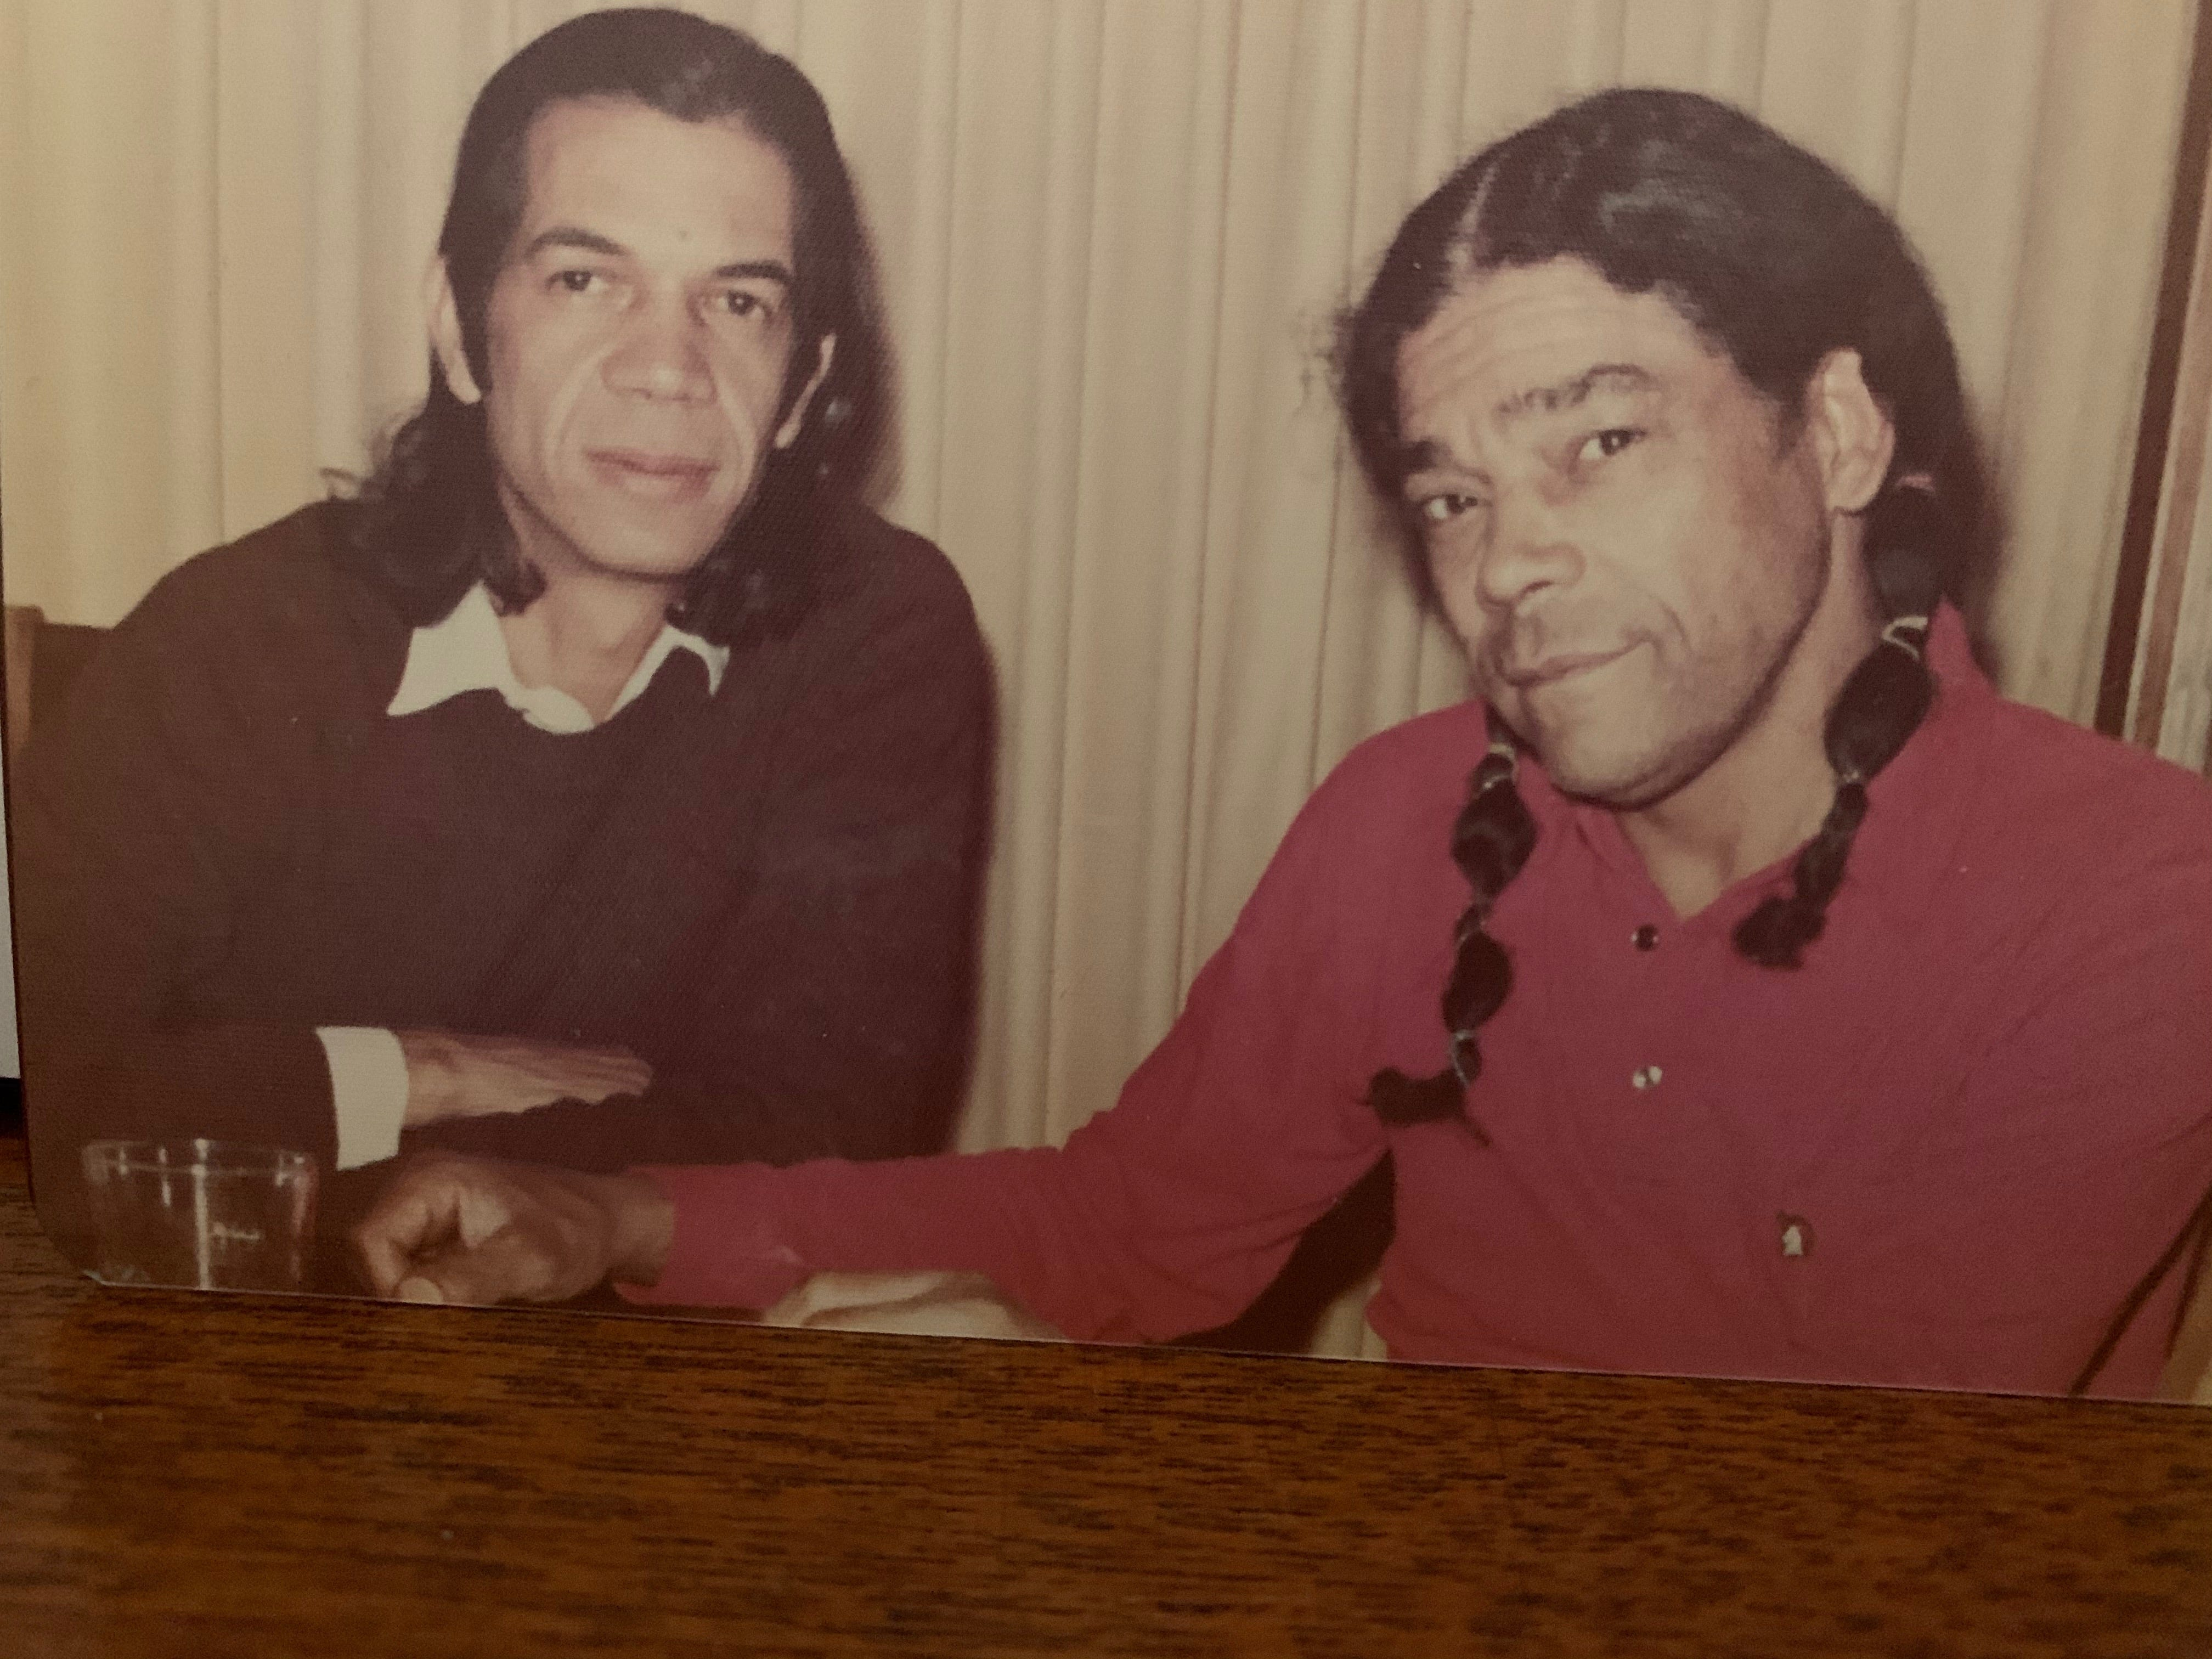 """James """"Gray Hawk"""" Fraser, left, and Gary """"Corn Planter"""" Parker in the 1970s. Fraser and Parker were among six Native Americans who established the National Day of Mourning in 1970."""